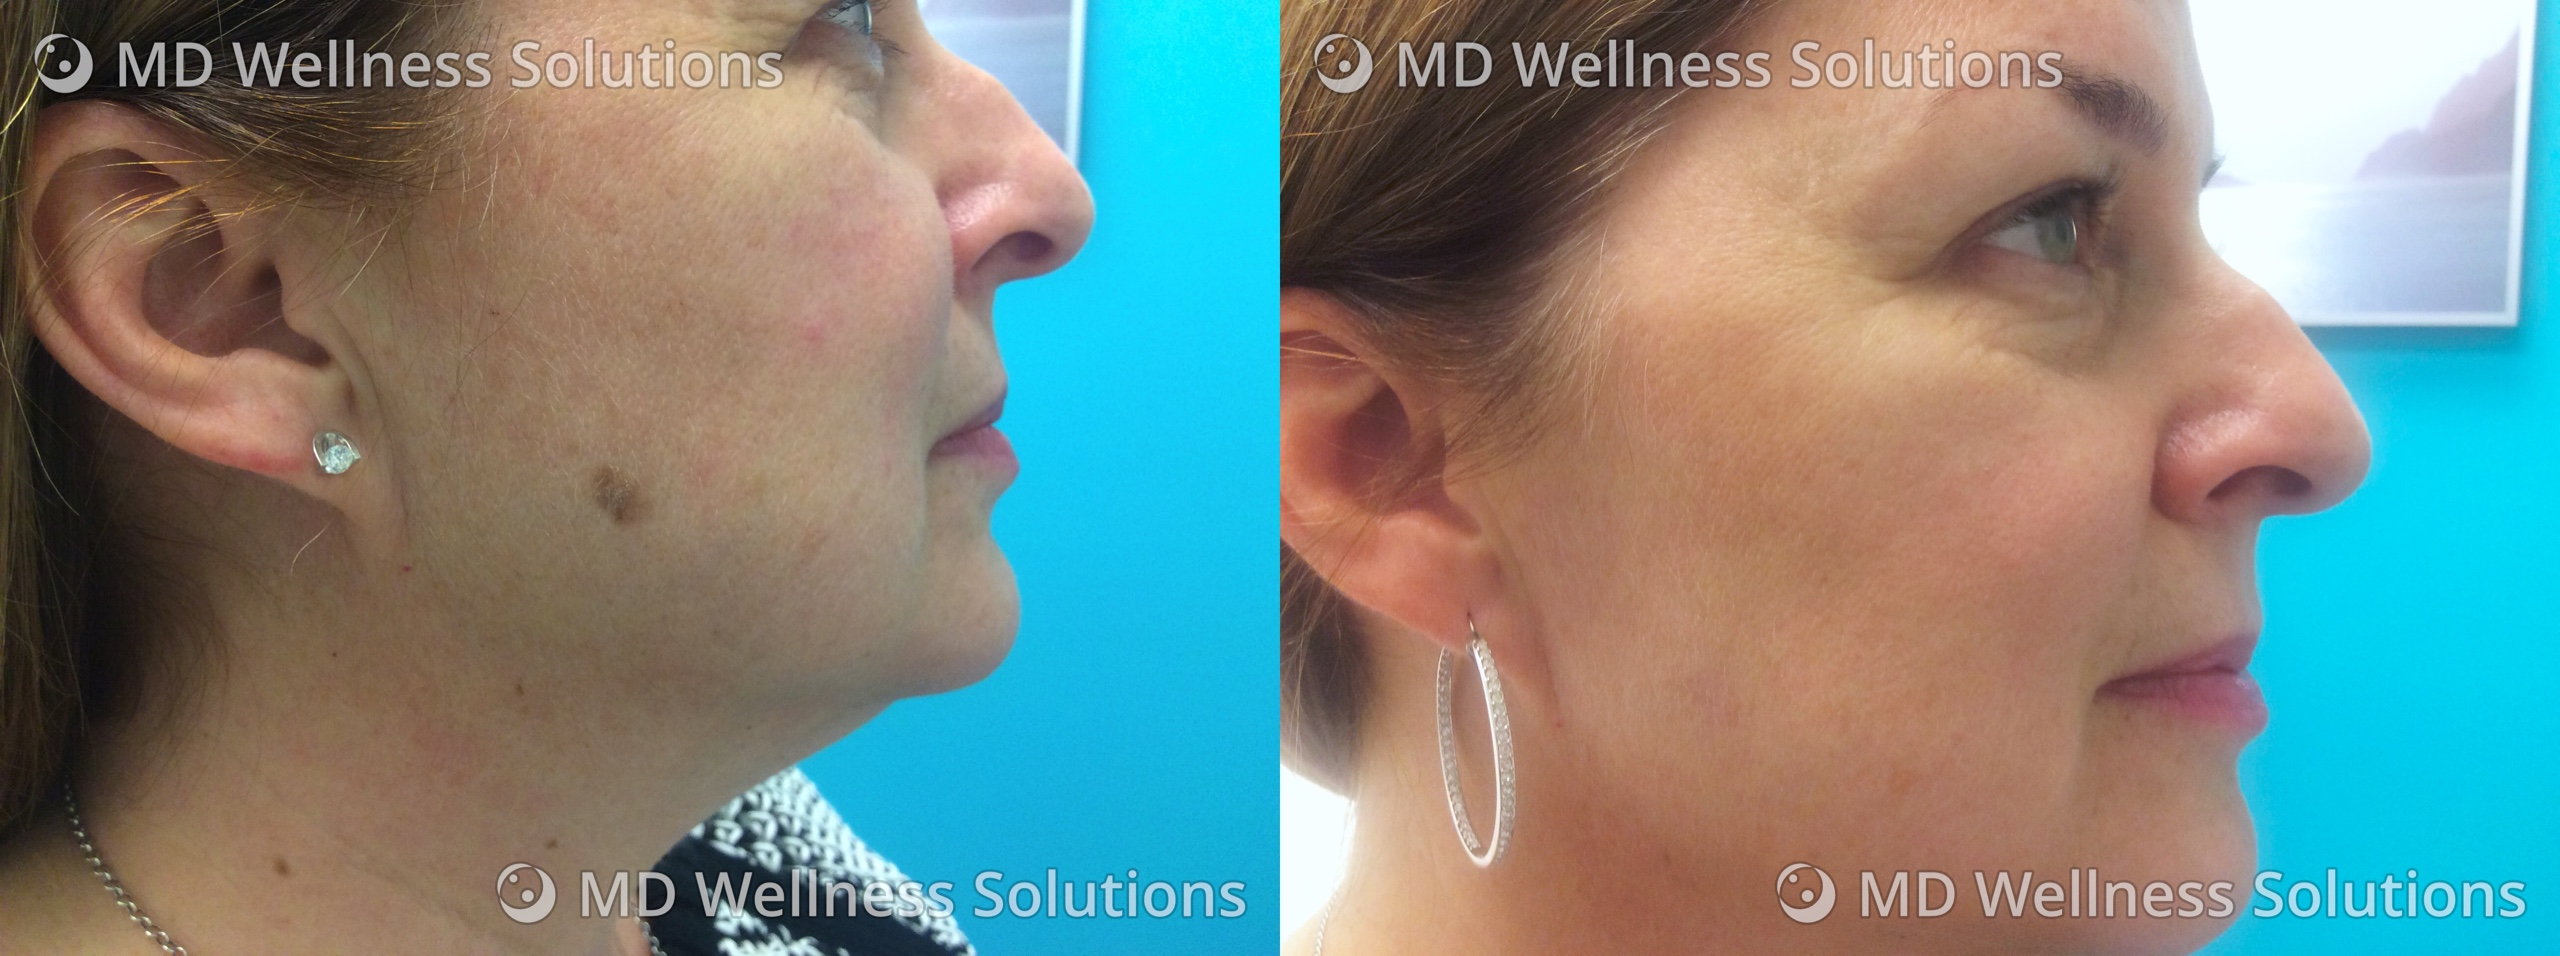 55-64 year old woman before and after special area treatment